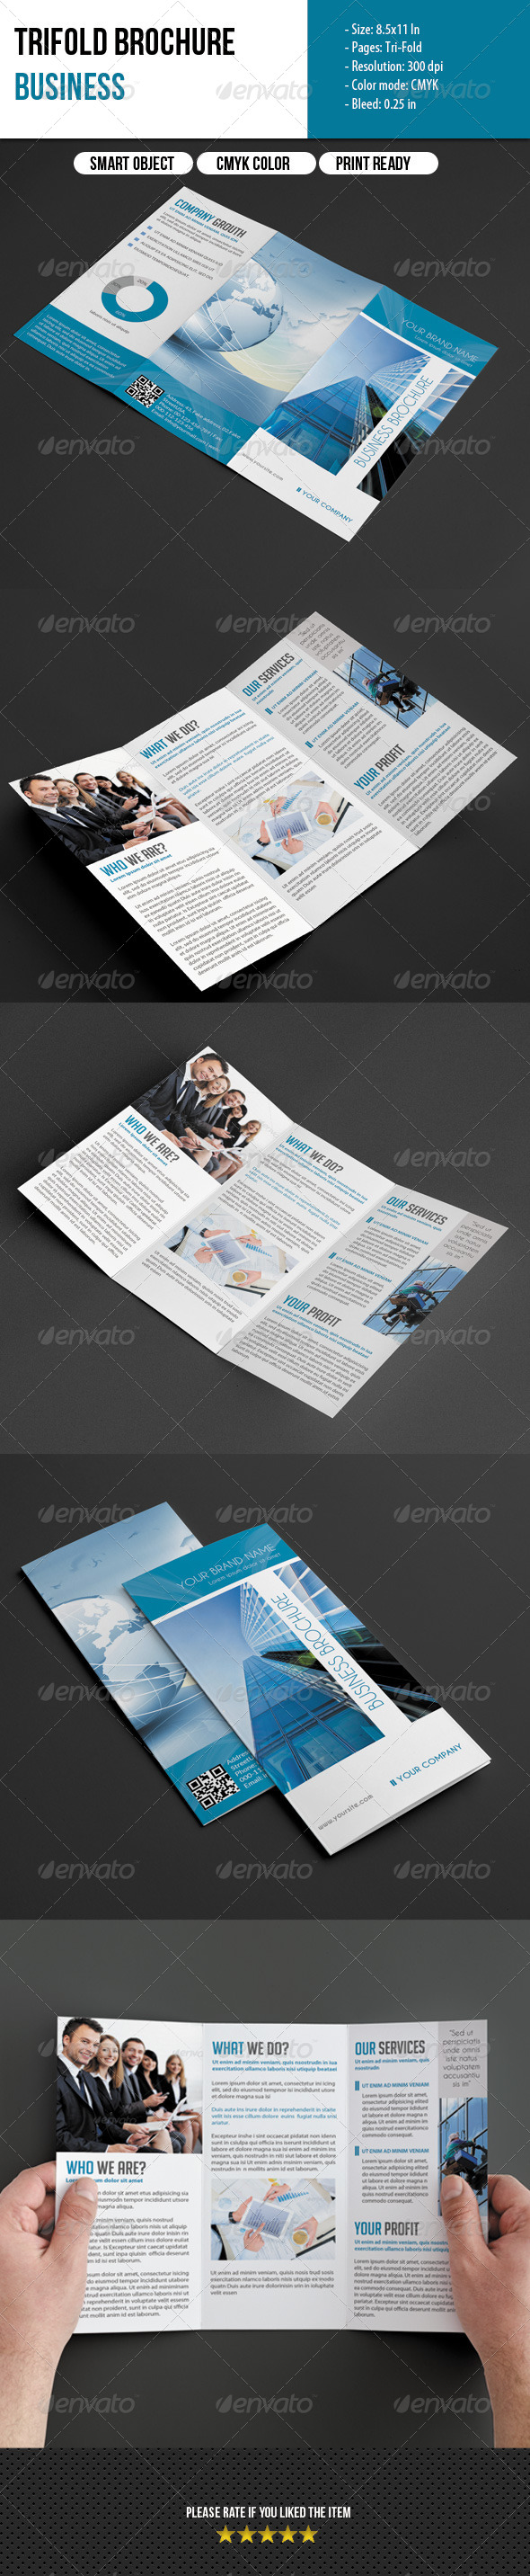 GraphicRiver Trifold Brochure-Business 6164289